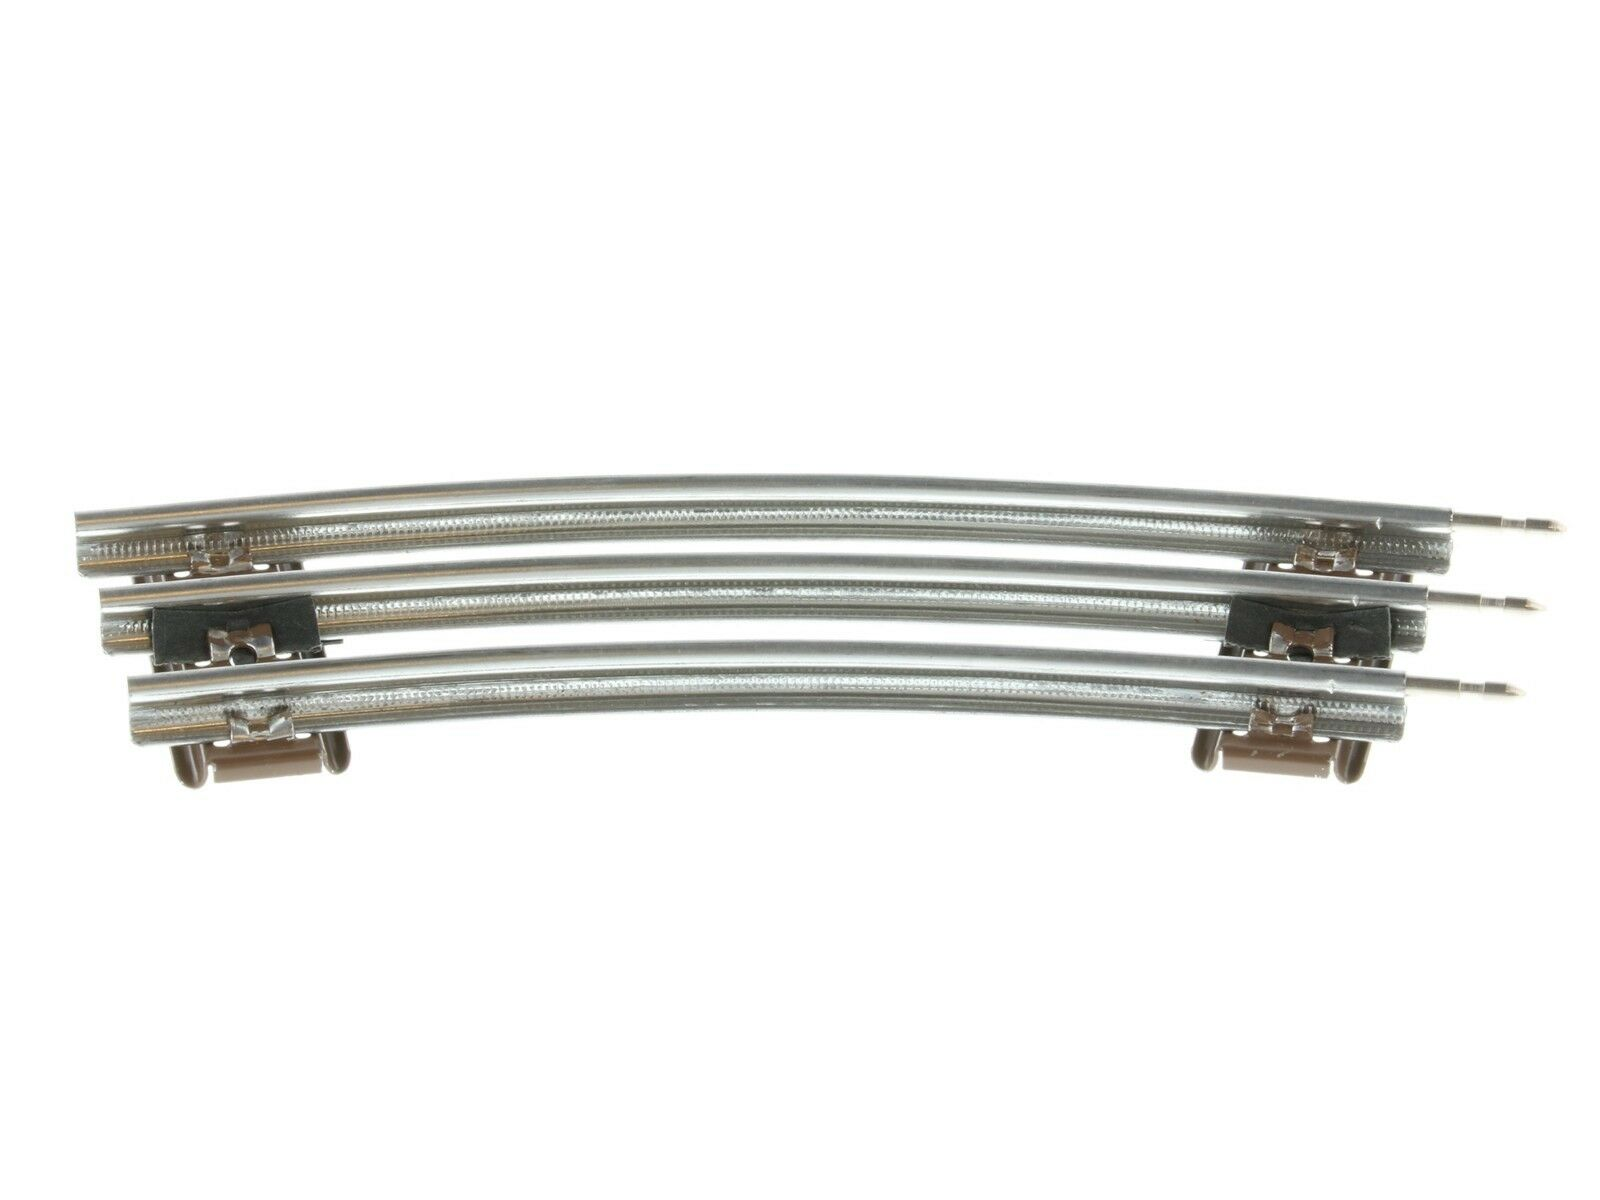 discontinued Lionel Straight Track Section 6-65038 0-27 Gauge